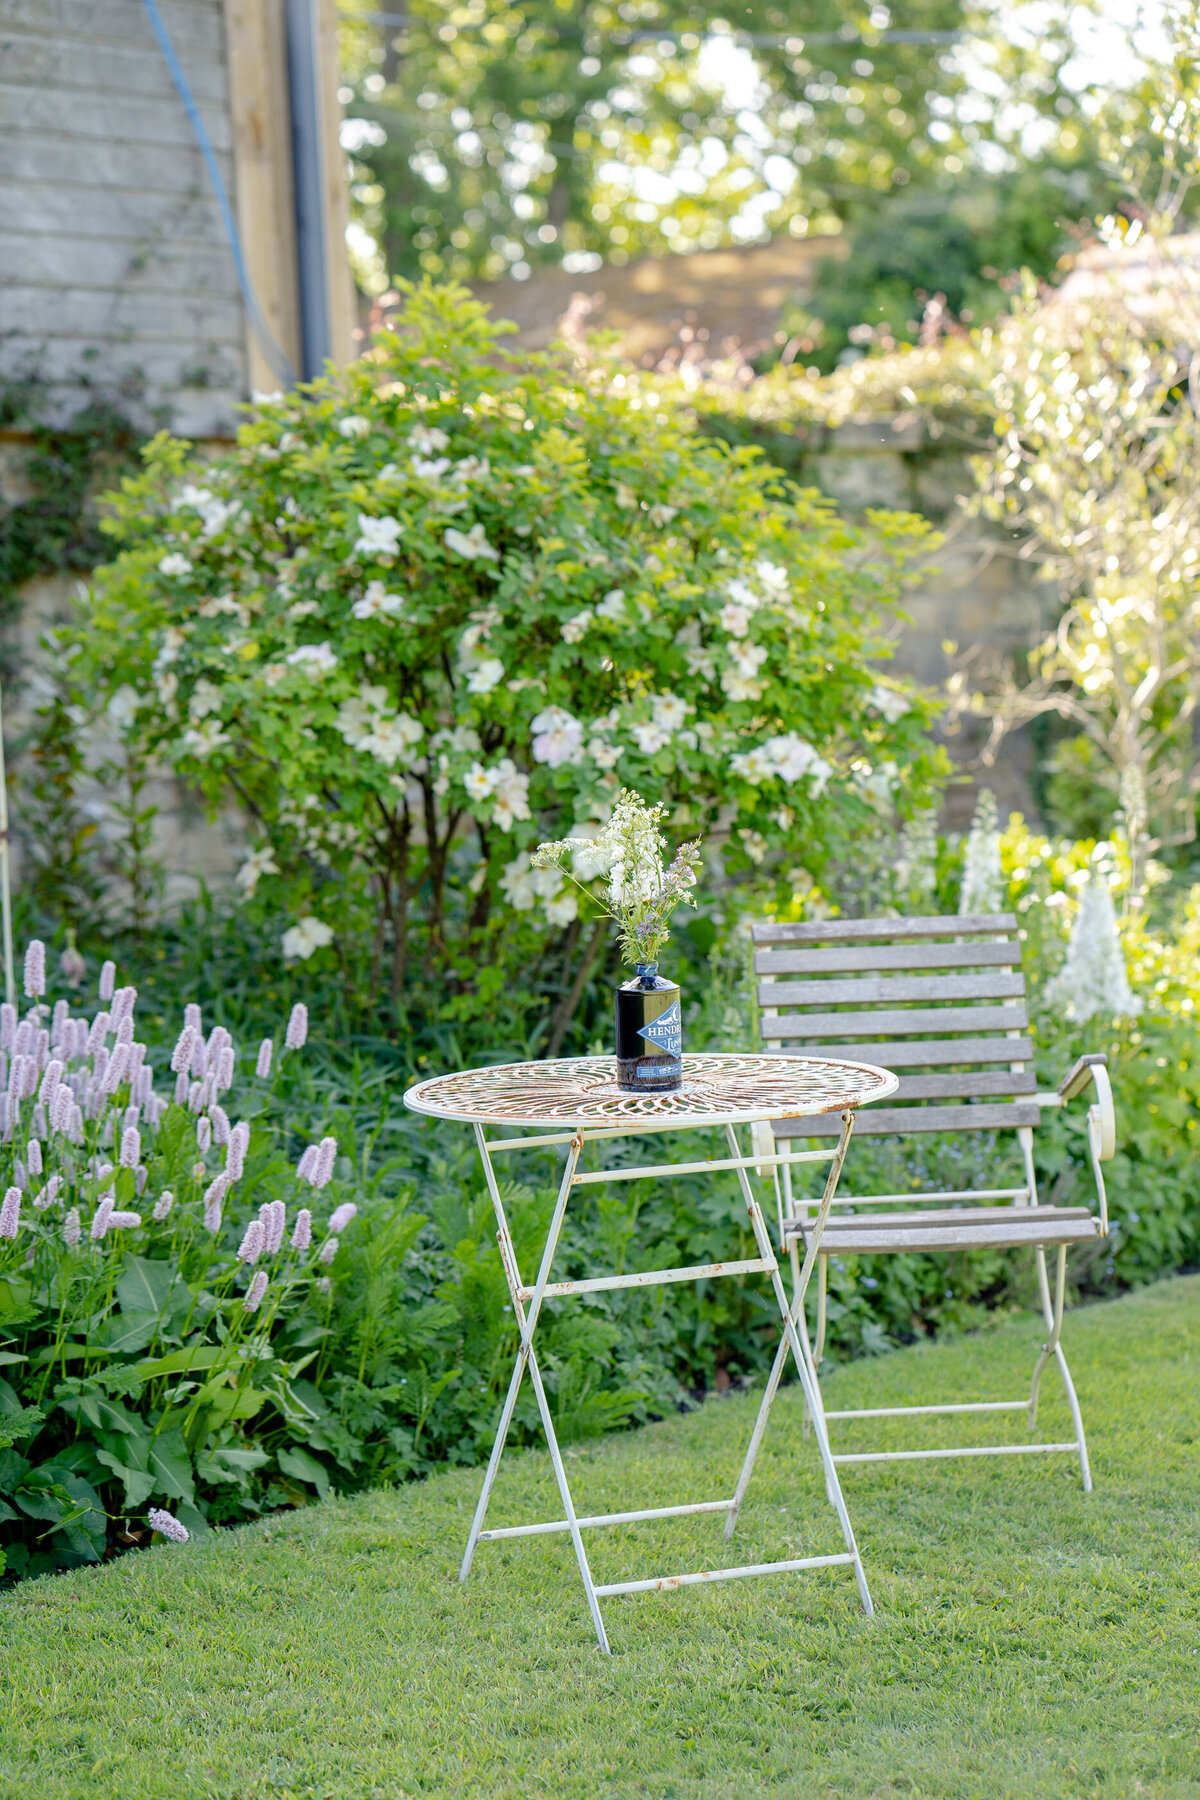 Garden table and chair. Creative photography Leeds